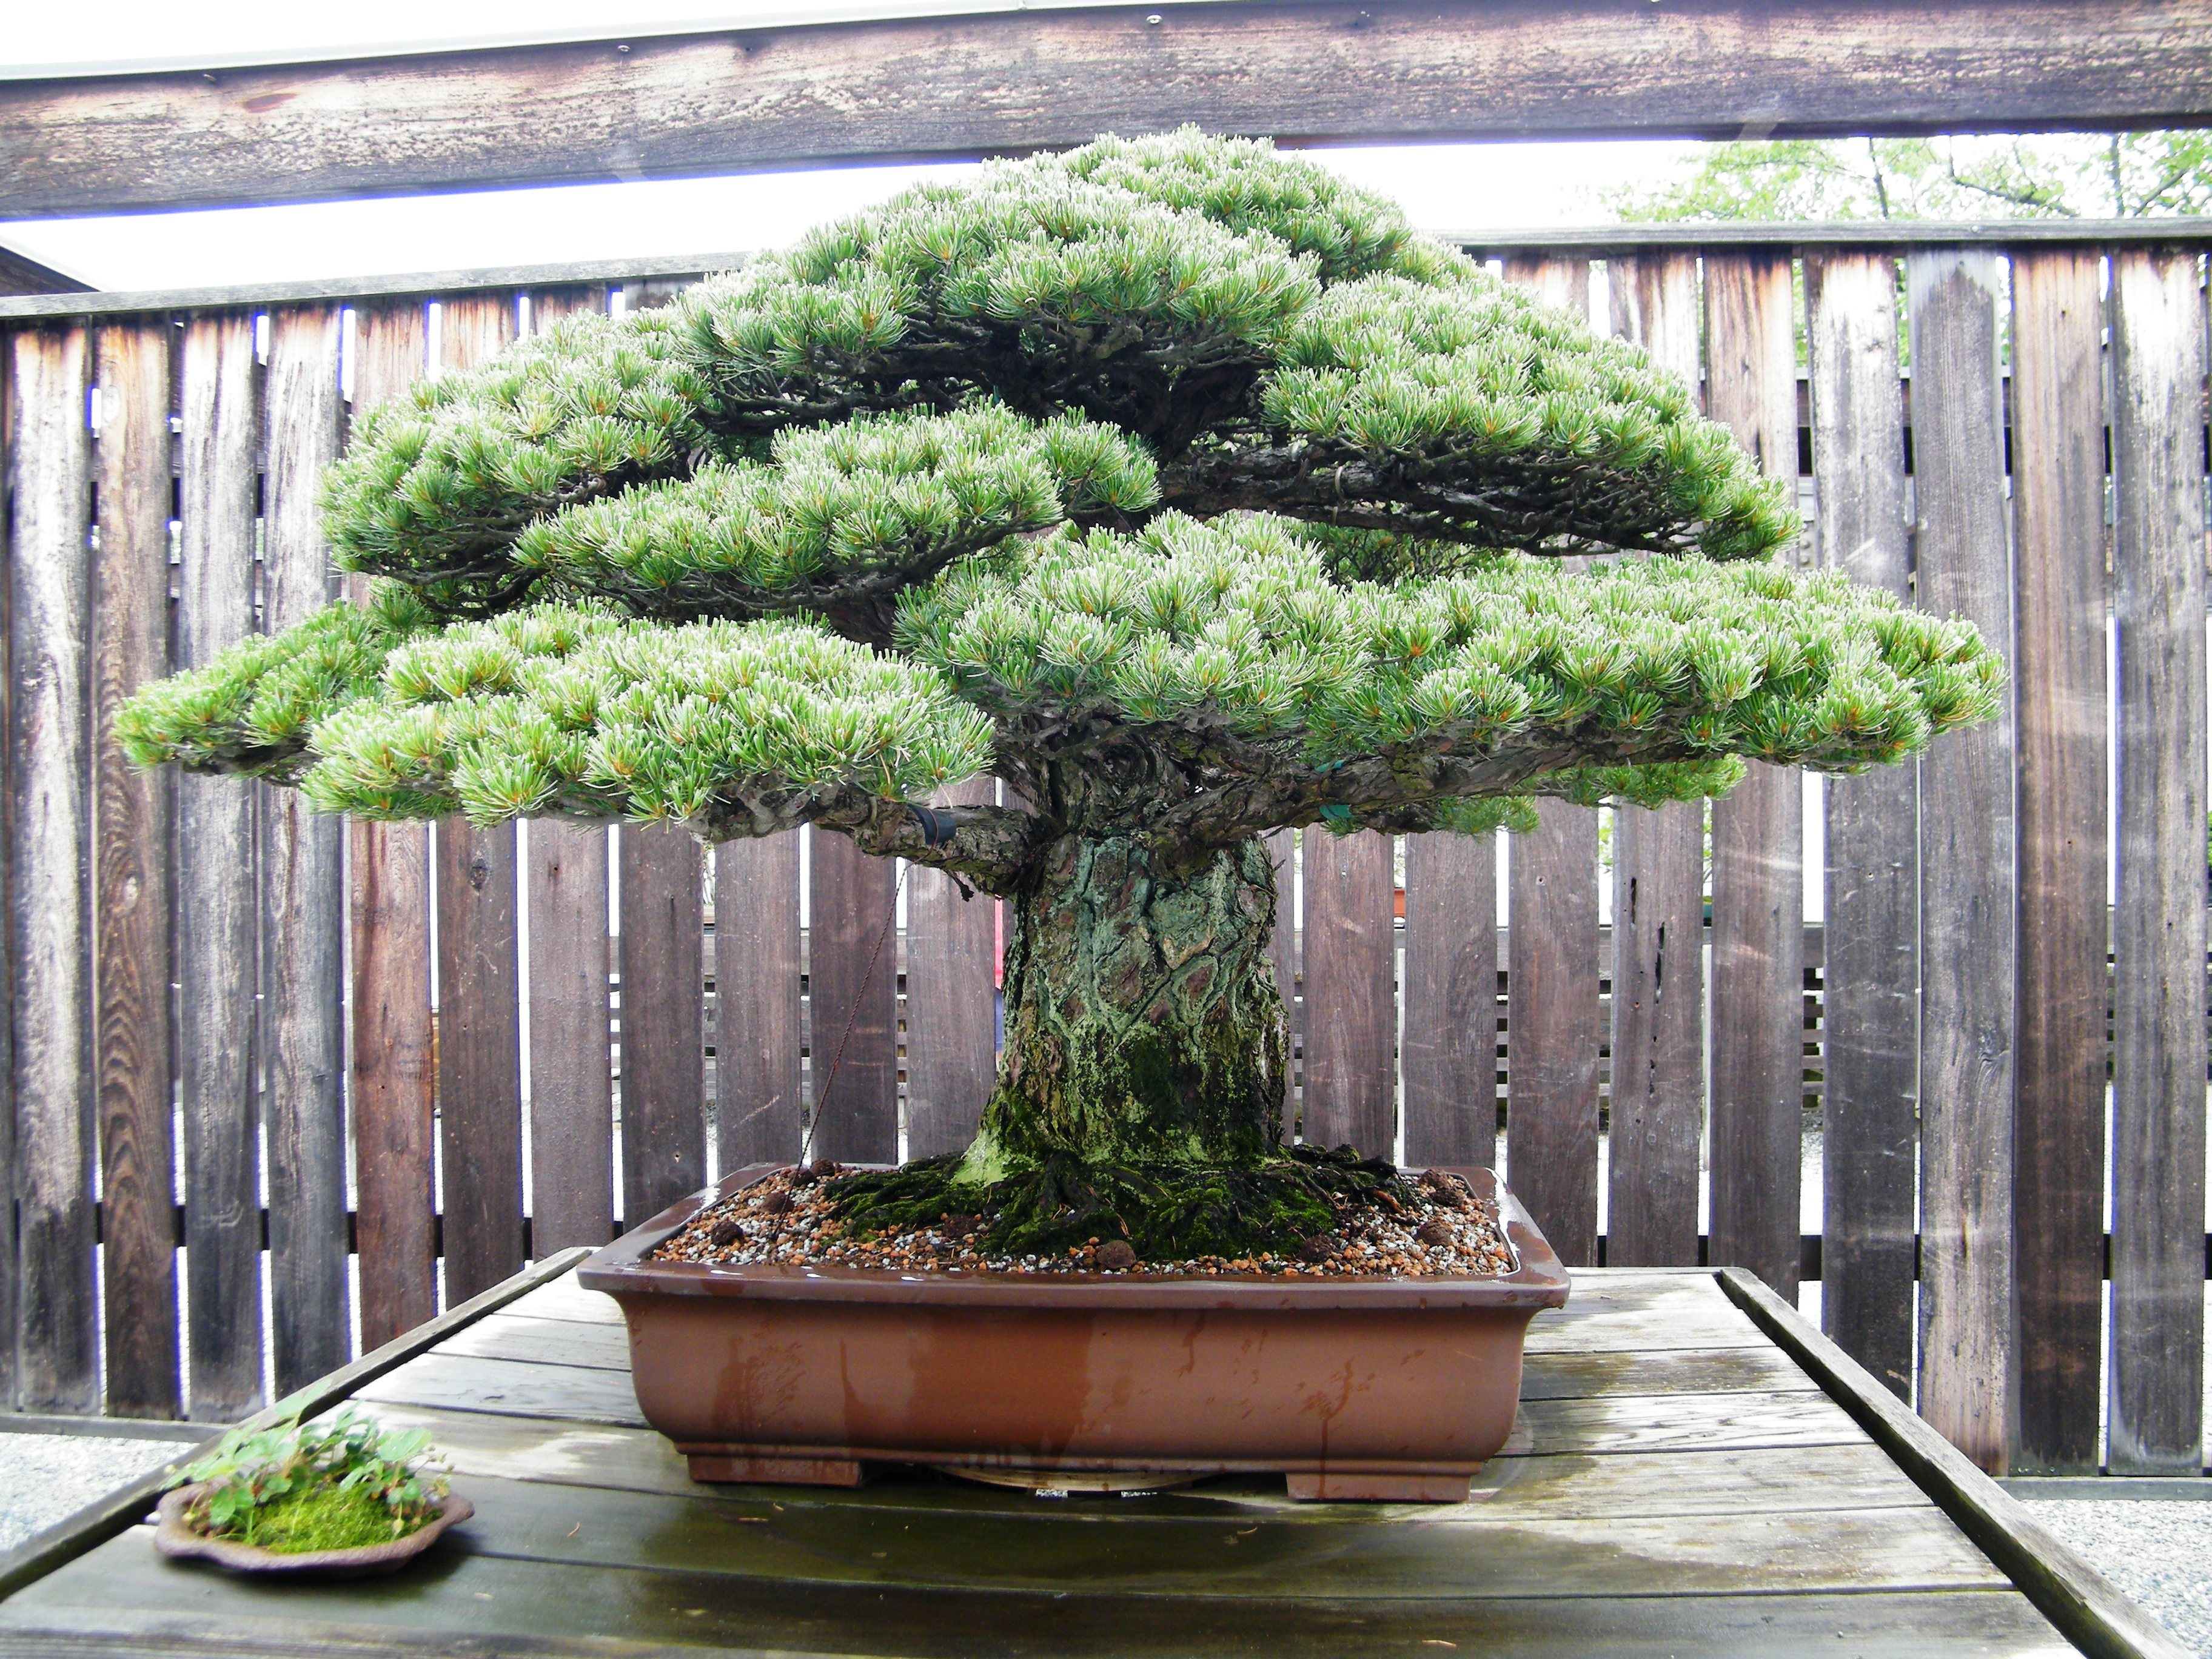 File Japanese White Pine National Bonsai Penjing Museum Washington D C Stierch Jpg Wikimedia Commons